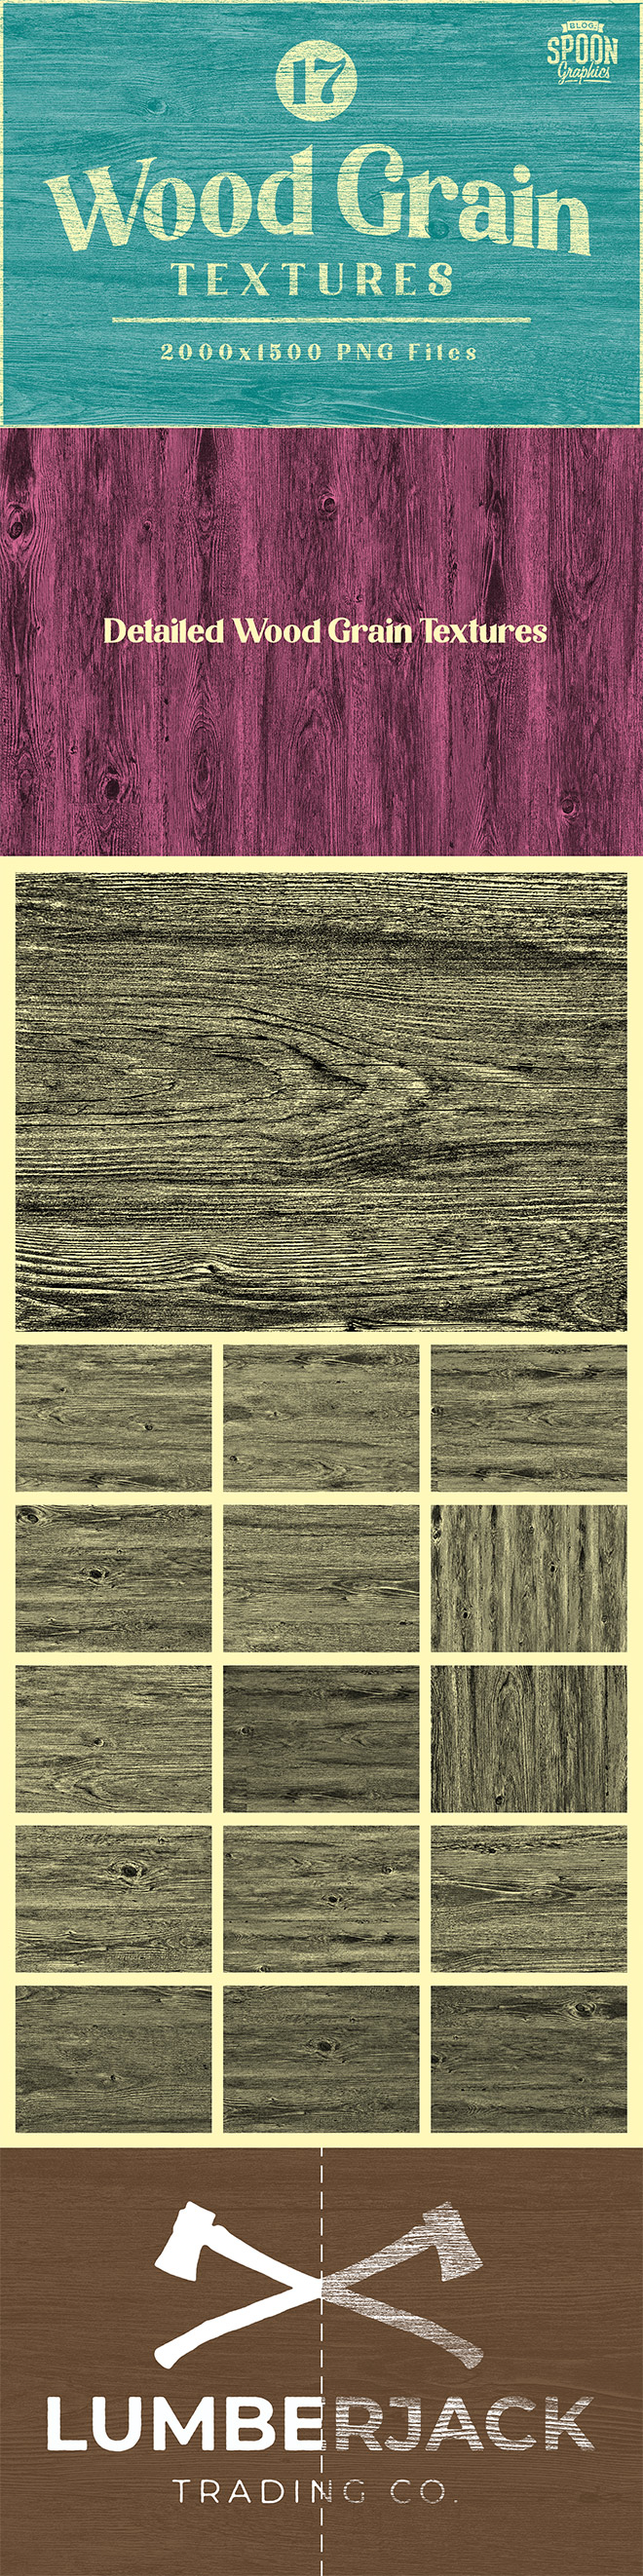 Free Pack of Wood Grain Textures with PNG Transparency